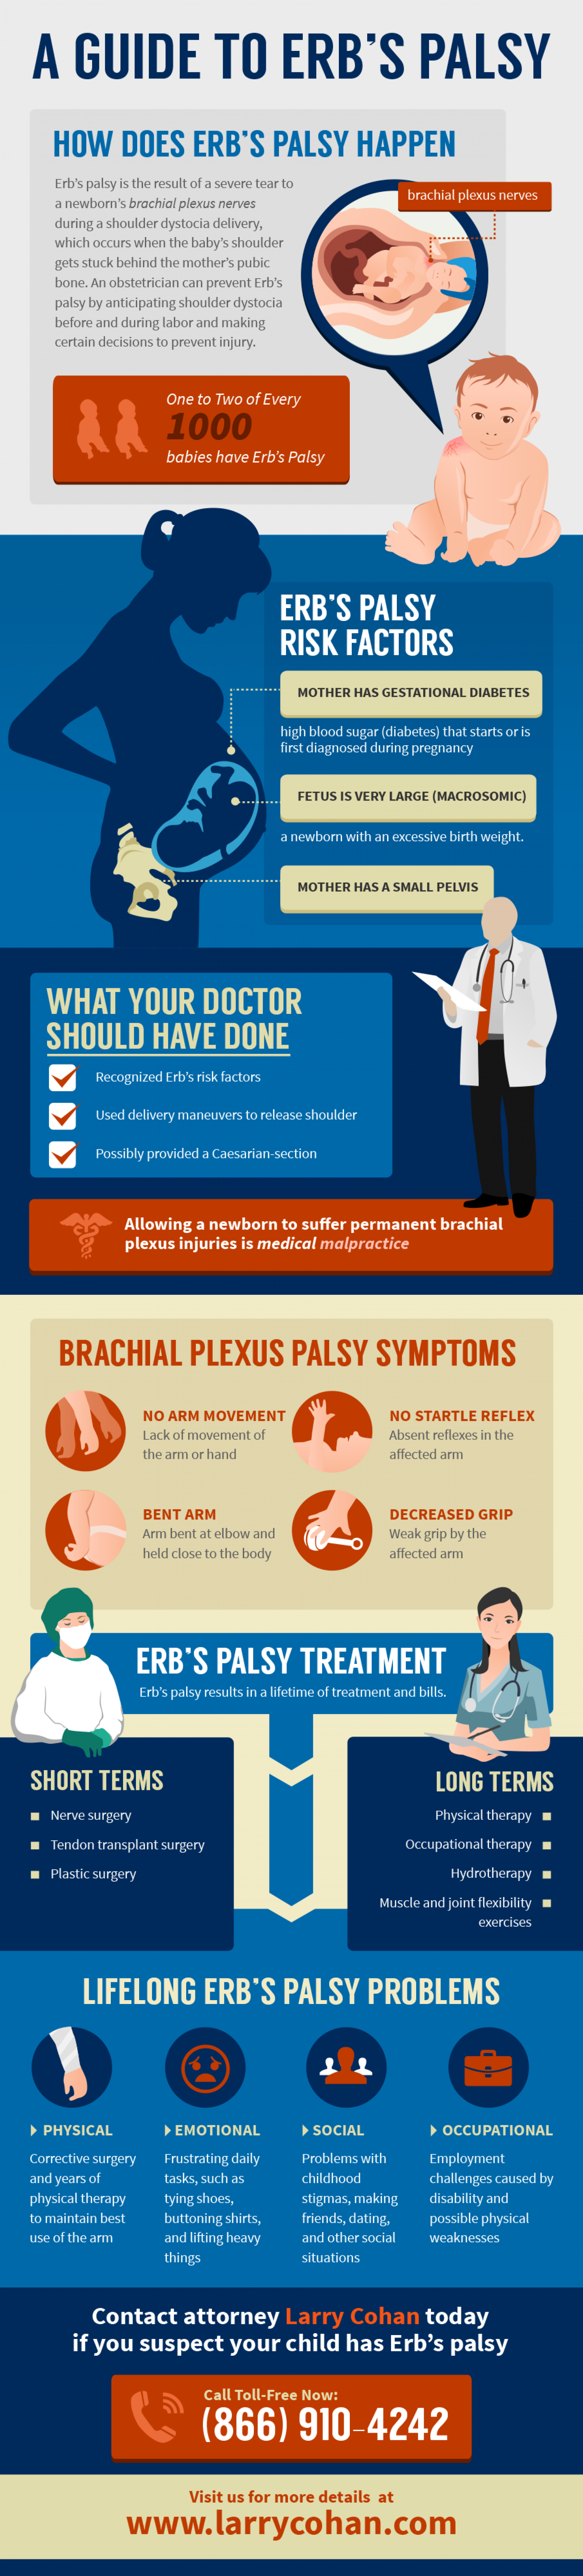 Guide to Erb's Palsy Infographic